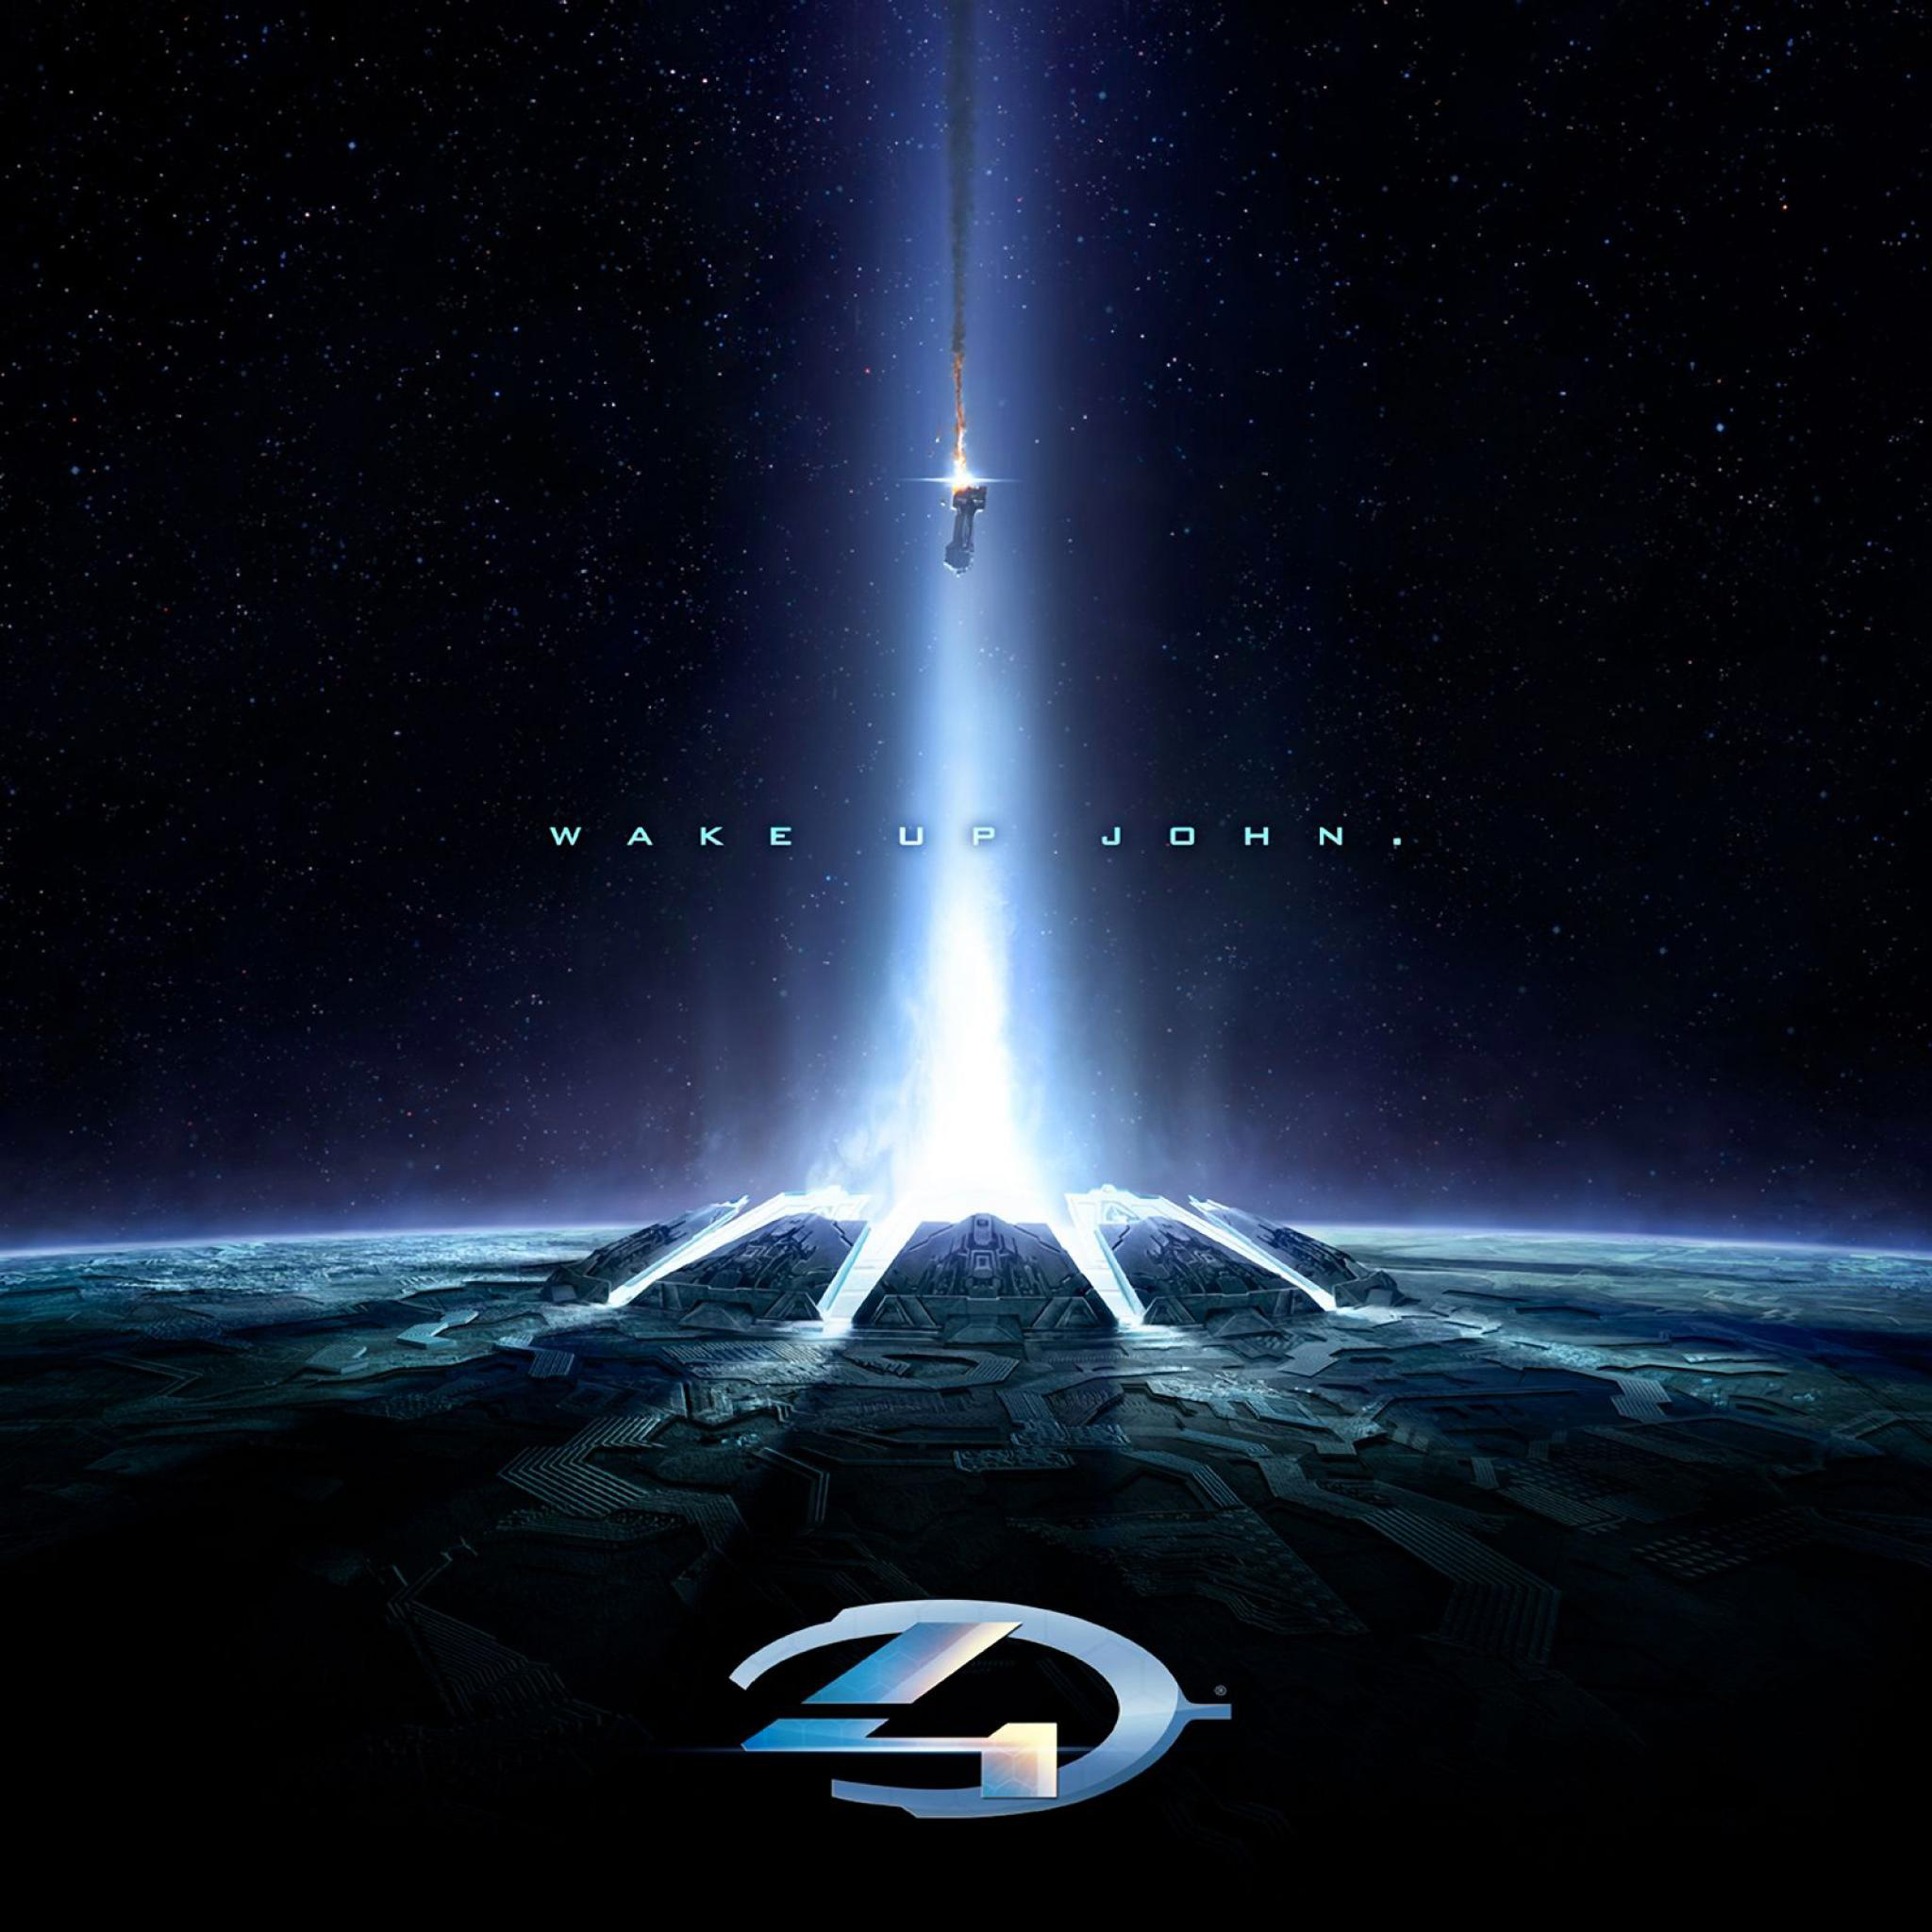 Halo 4 3Wallpapers iPad Retina Halo 4   iPad Retina